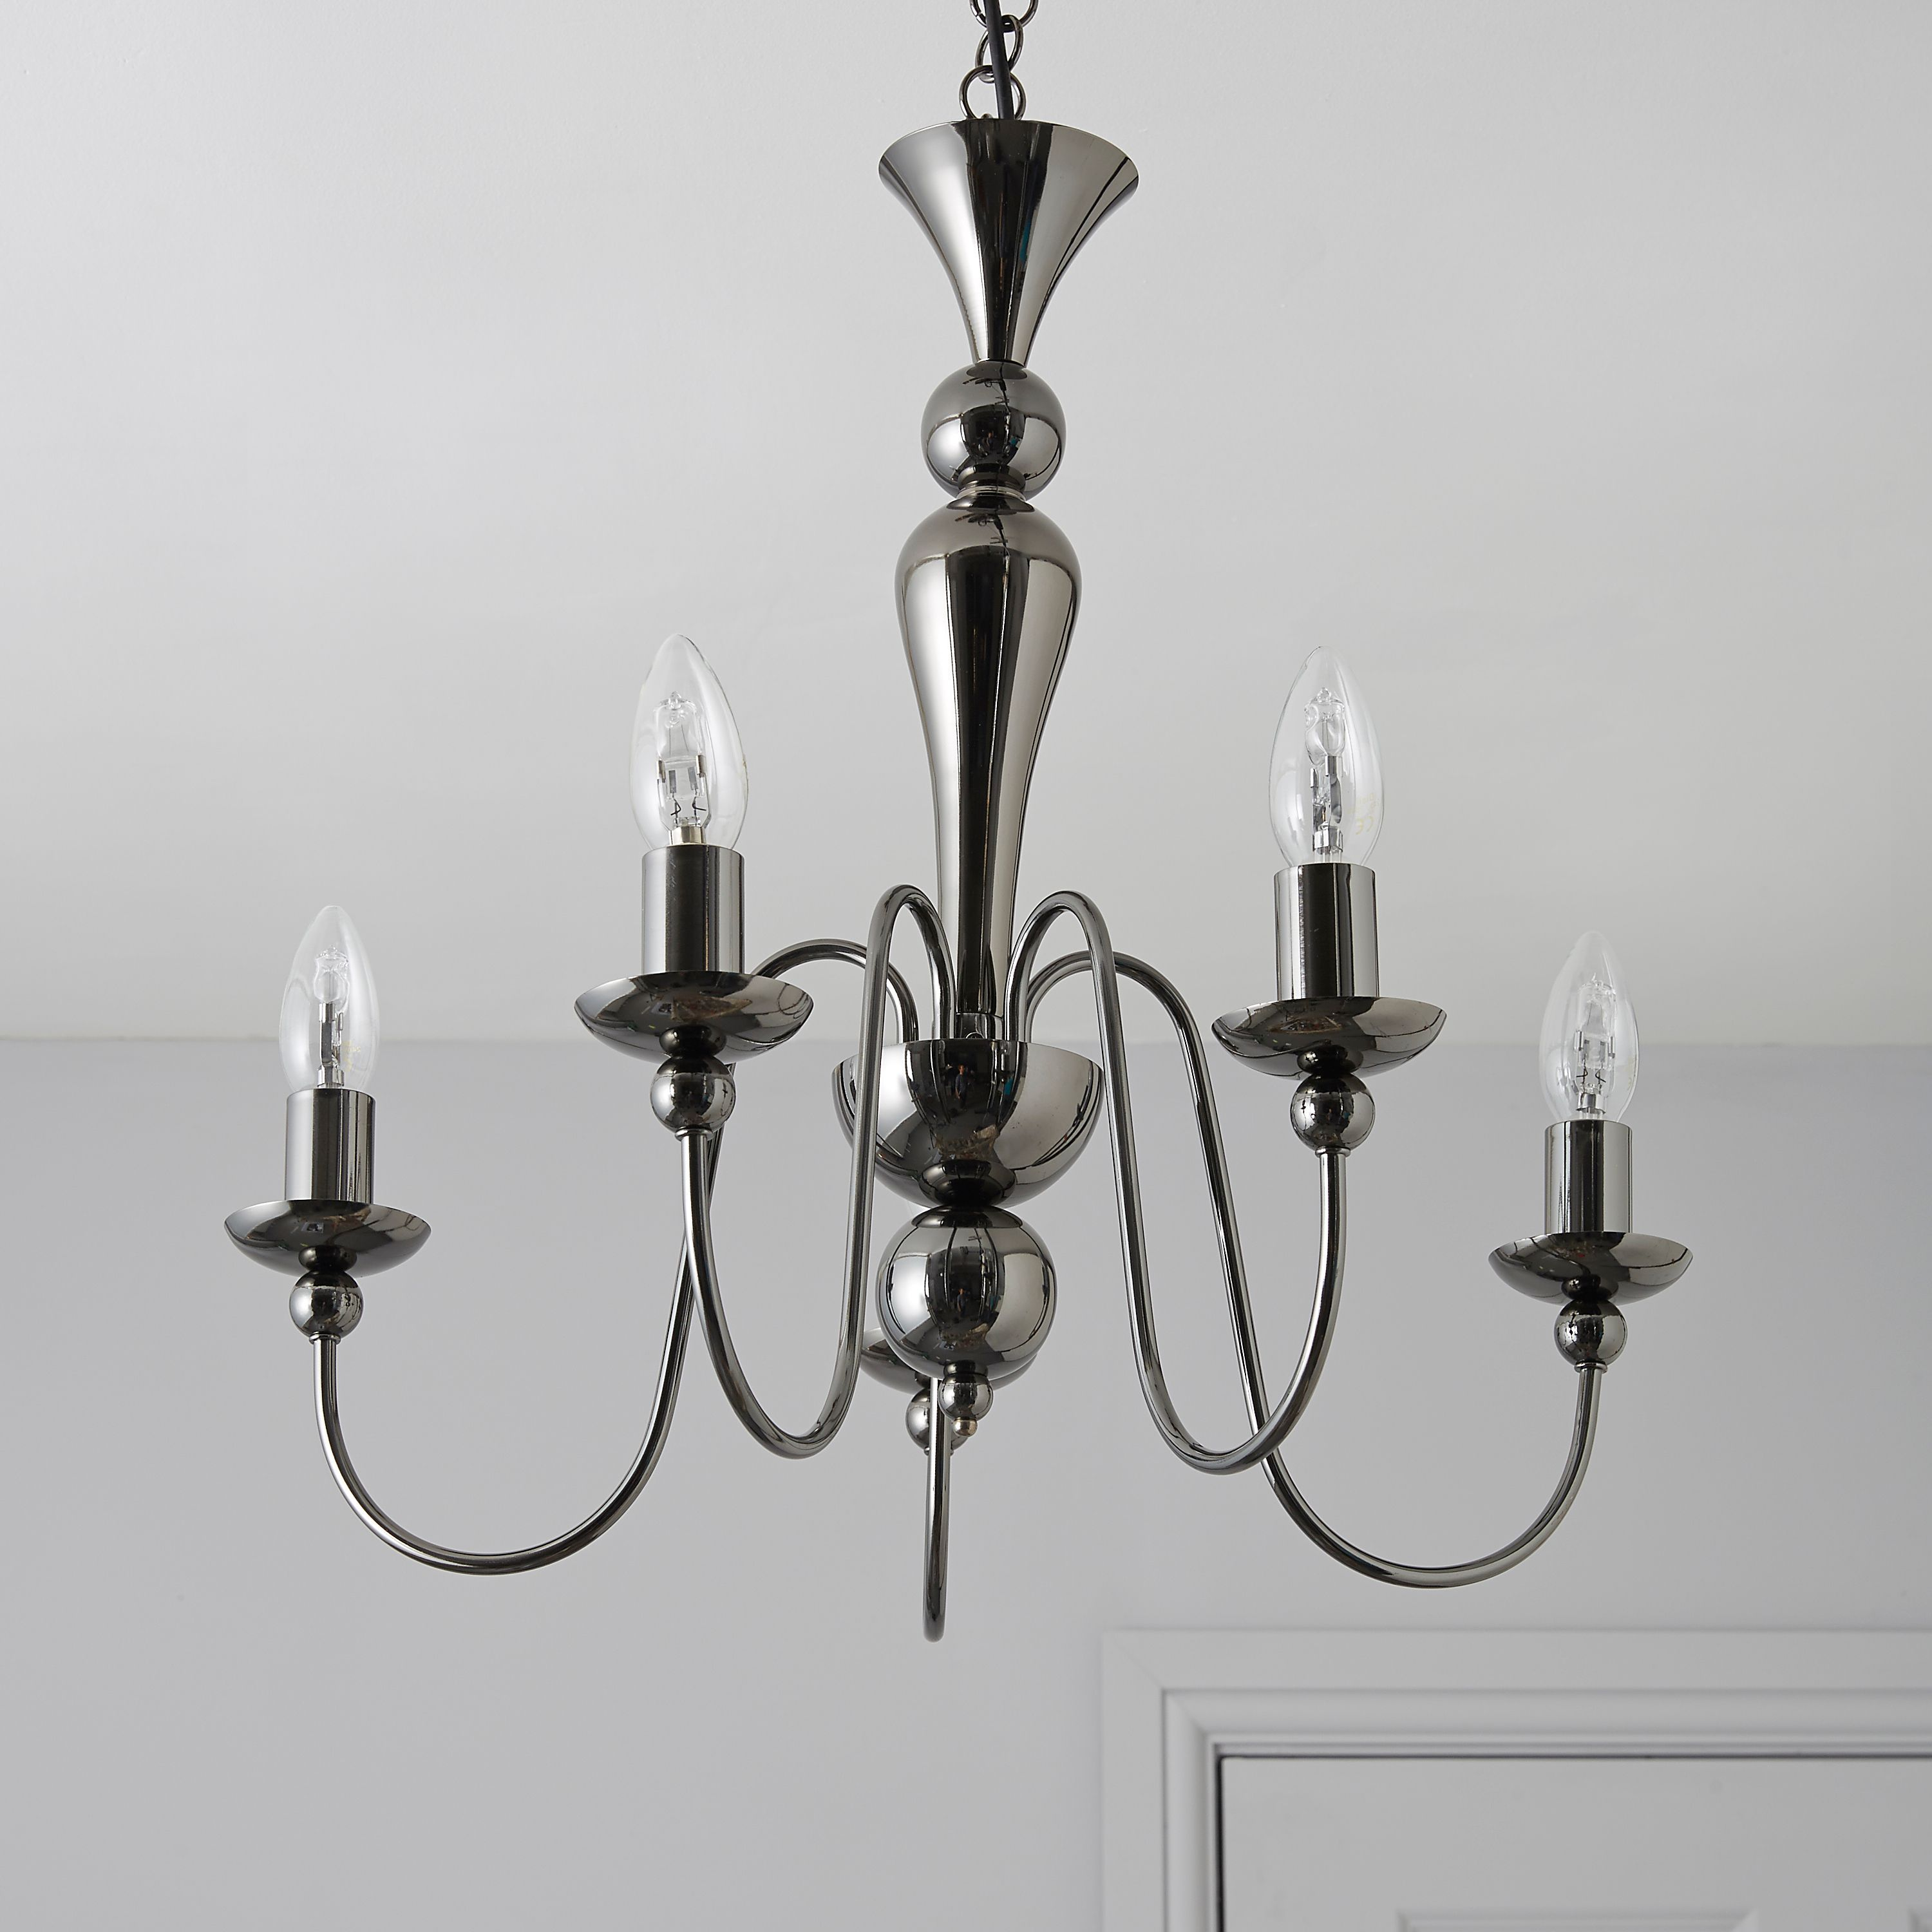 Megan black nickel effect 5 lamp pendant ceiling light megan black nickel effect 5 lamp pendant ceiling light departments diy at bq aloadofball Choice Image